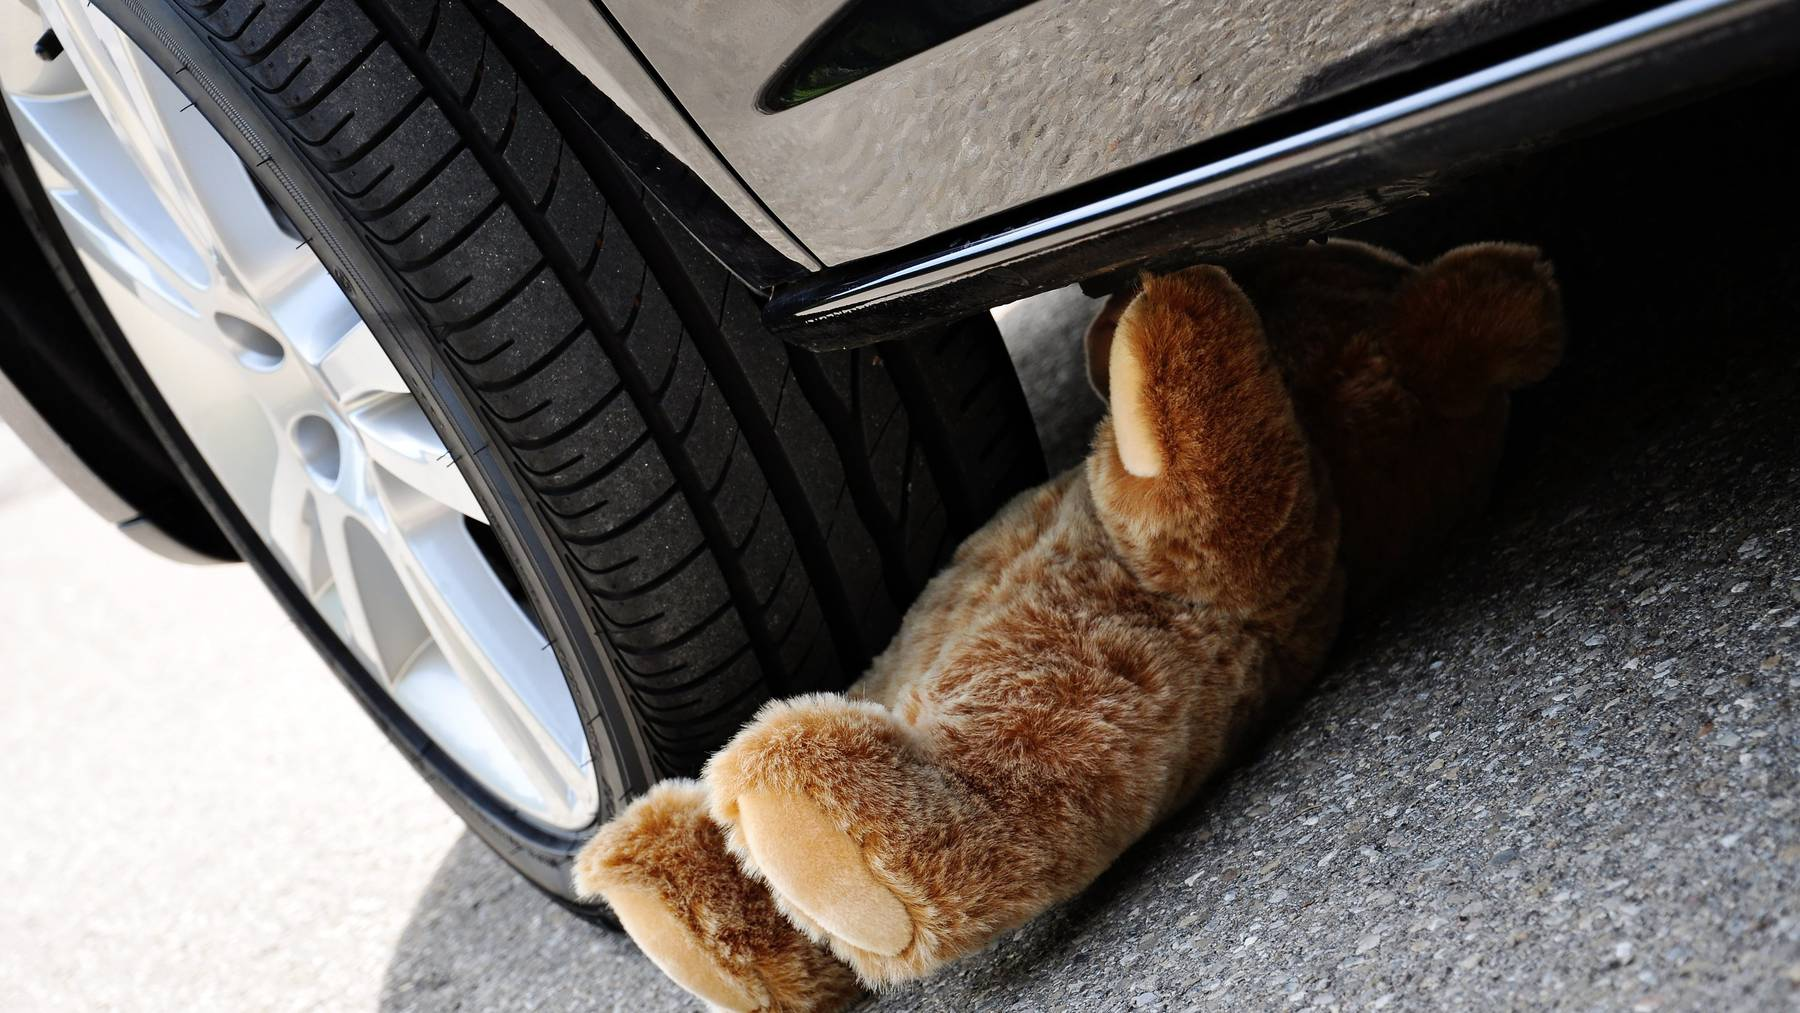 Teddy under car tires, symbolic car accident with playing children